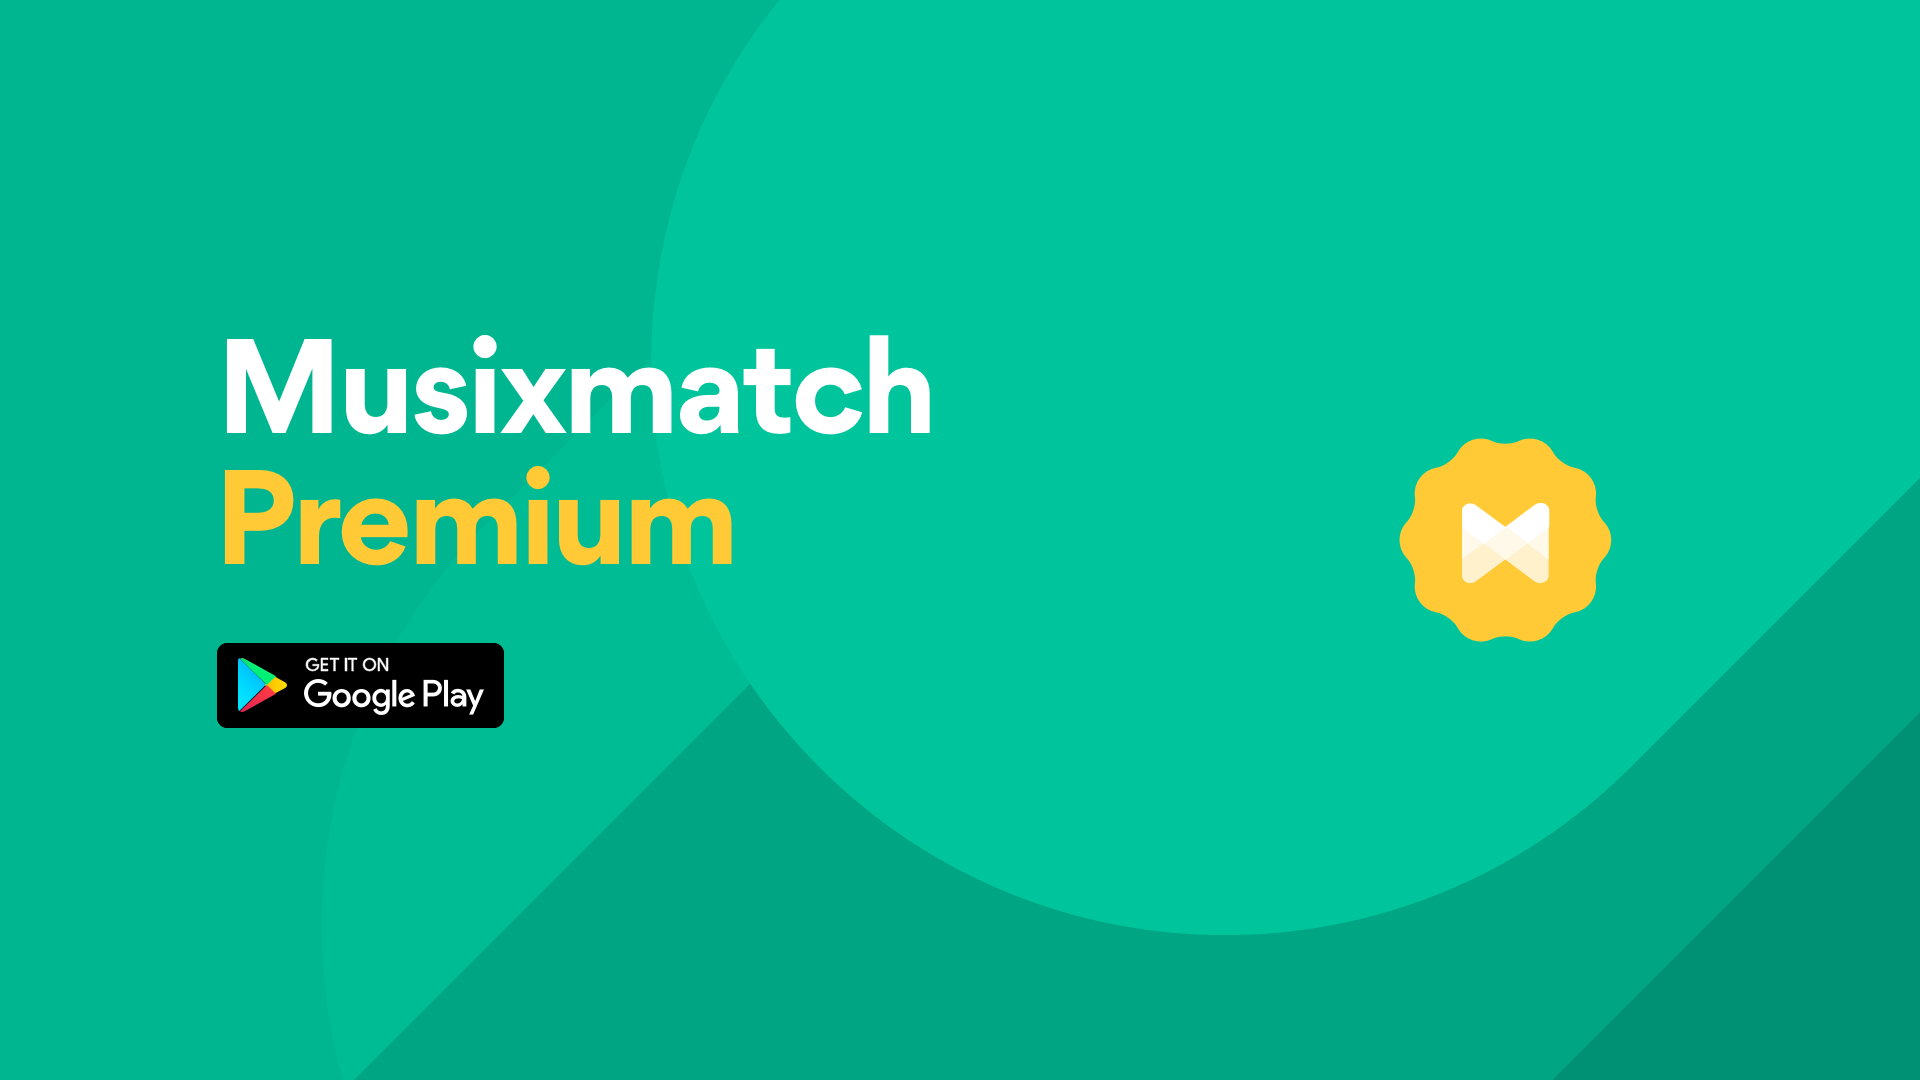 how to cancel the subscription - Musixmatch Forum